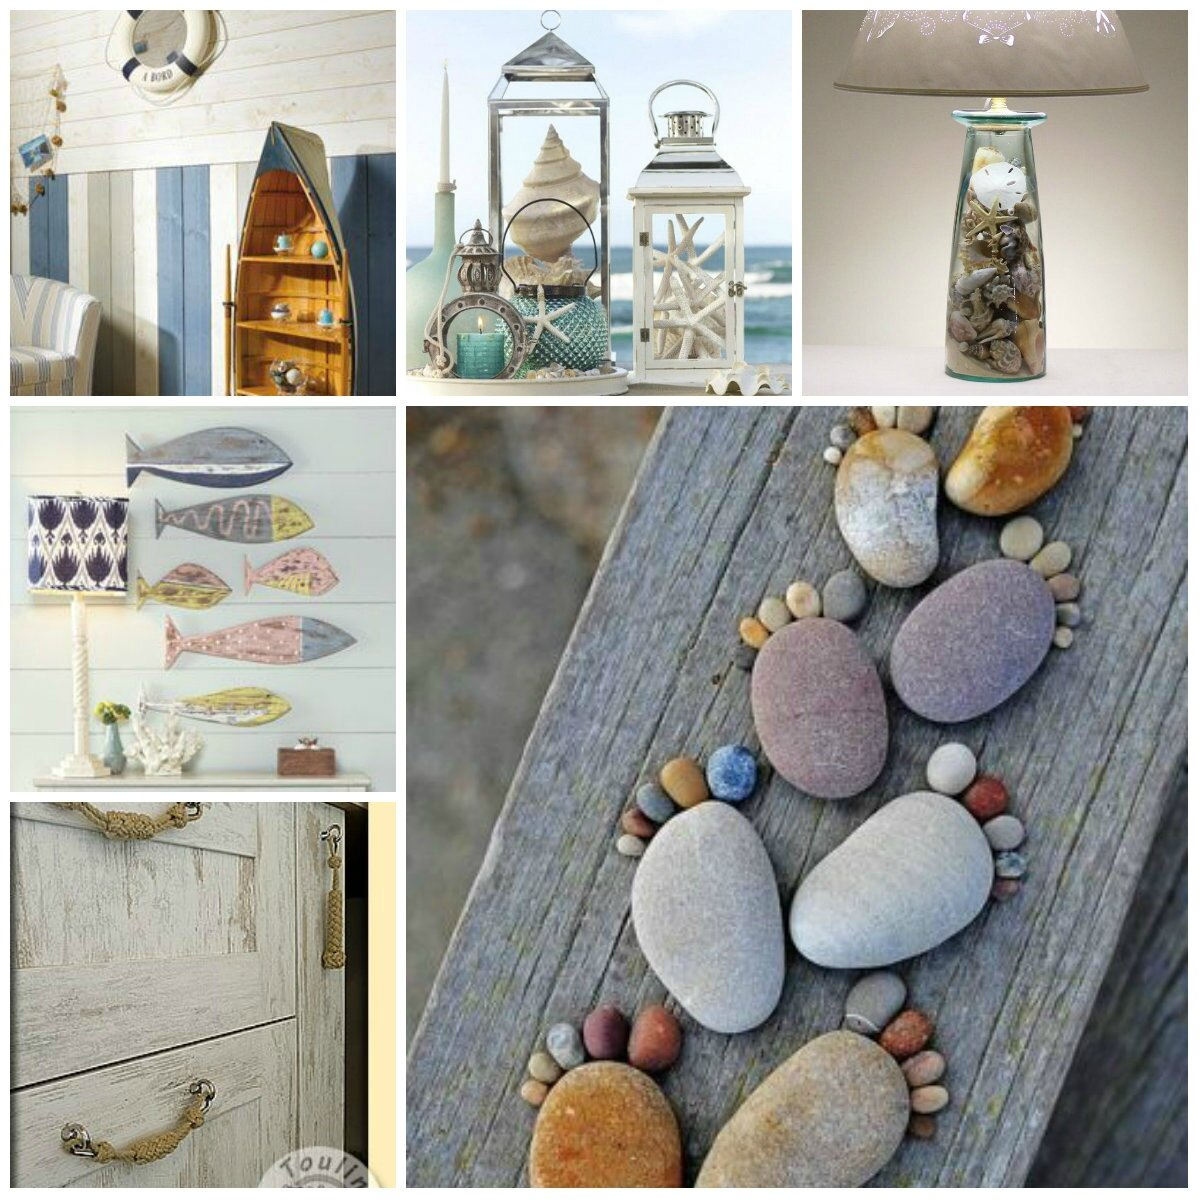 D coration maison theme mer for La maison deco